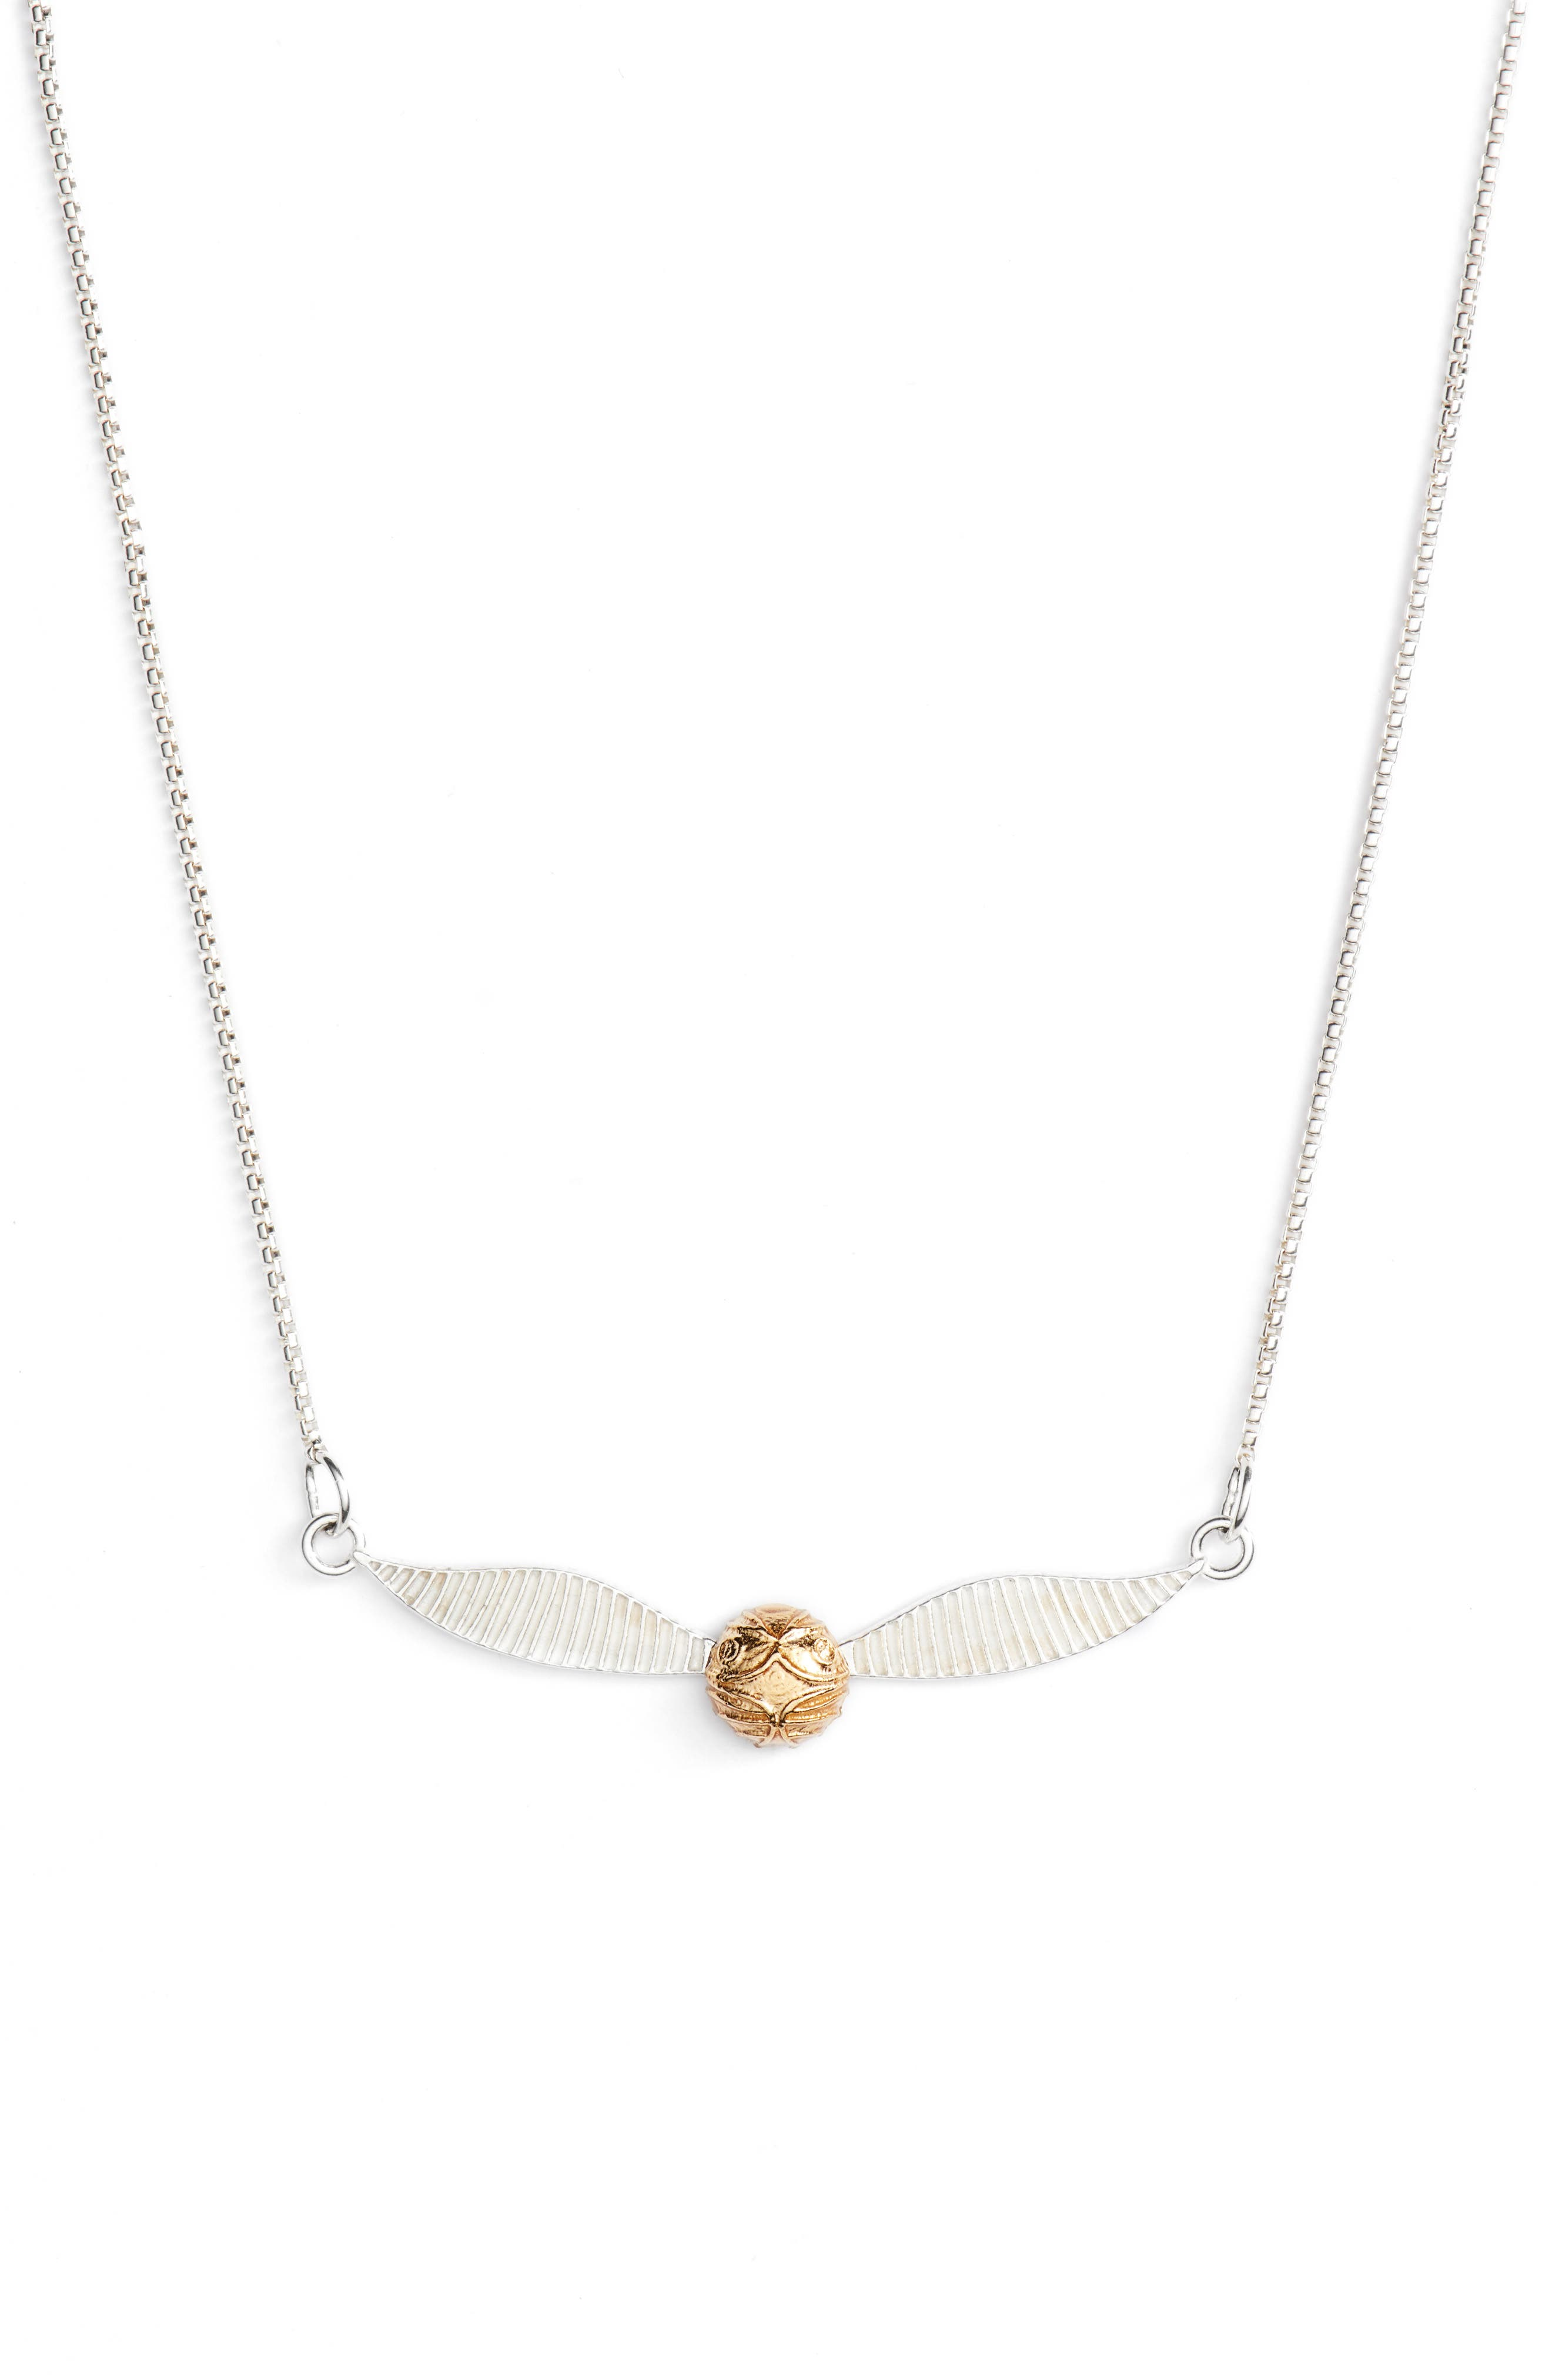 Harry Potter<sup>™</sup> Golden Snitch<sup>™</sup> Adjustable Necklace,                             Main thumbnail 1, color,